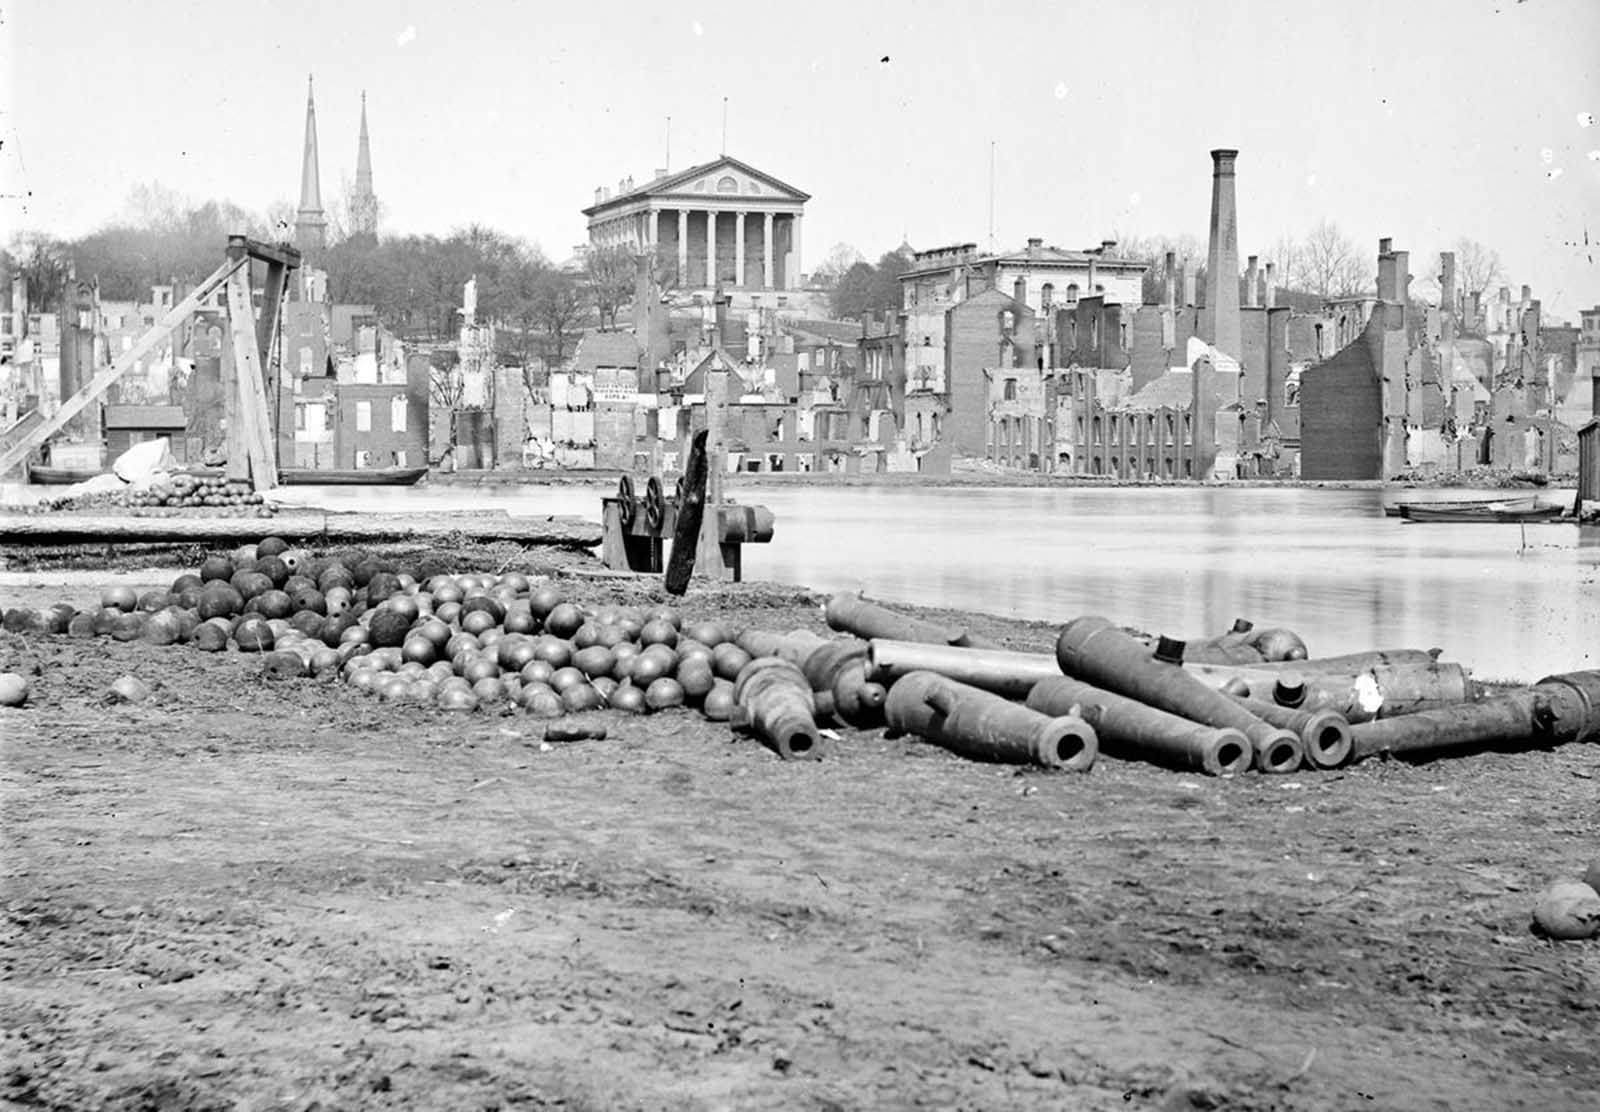 A view of the burned district of Richmond, Virginia, and the Capitol across the Canal Basin, in 1865. The city was assaulted by Union forces for more than nine months during the Siege of Petersburg, after which Confederate Gen. Robert E. Lee's army abandoned the battered city in April, 1865.